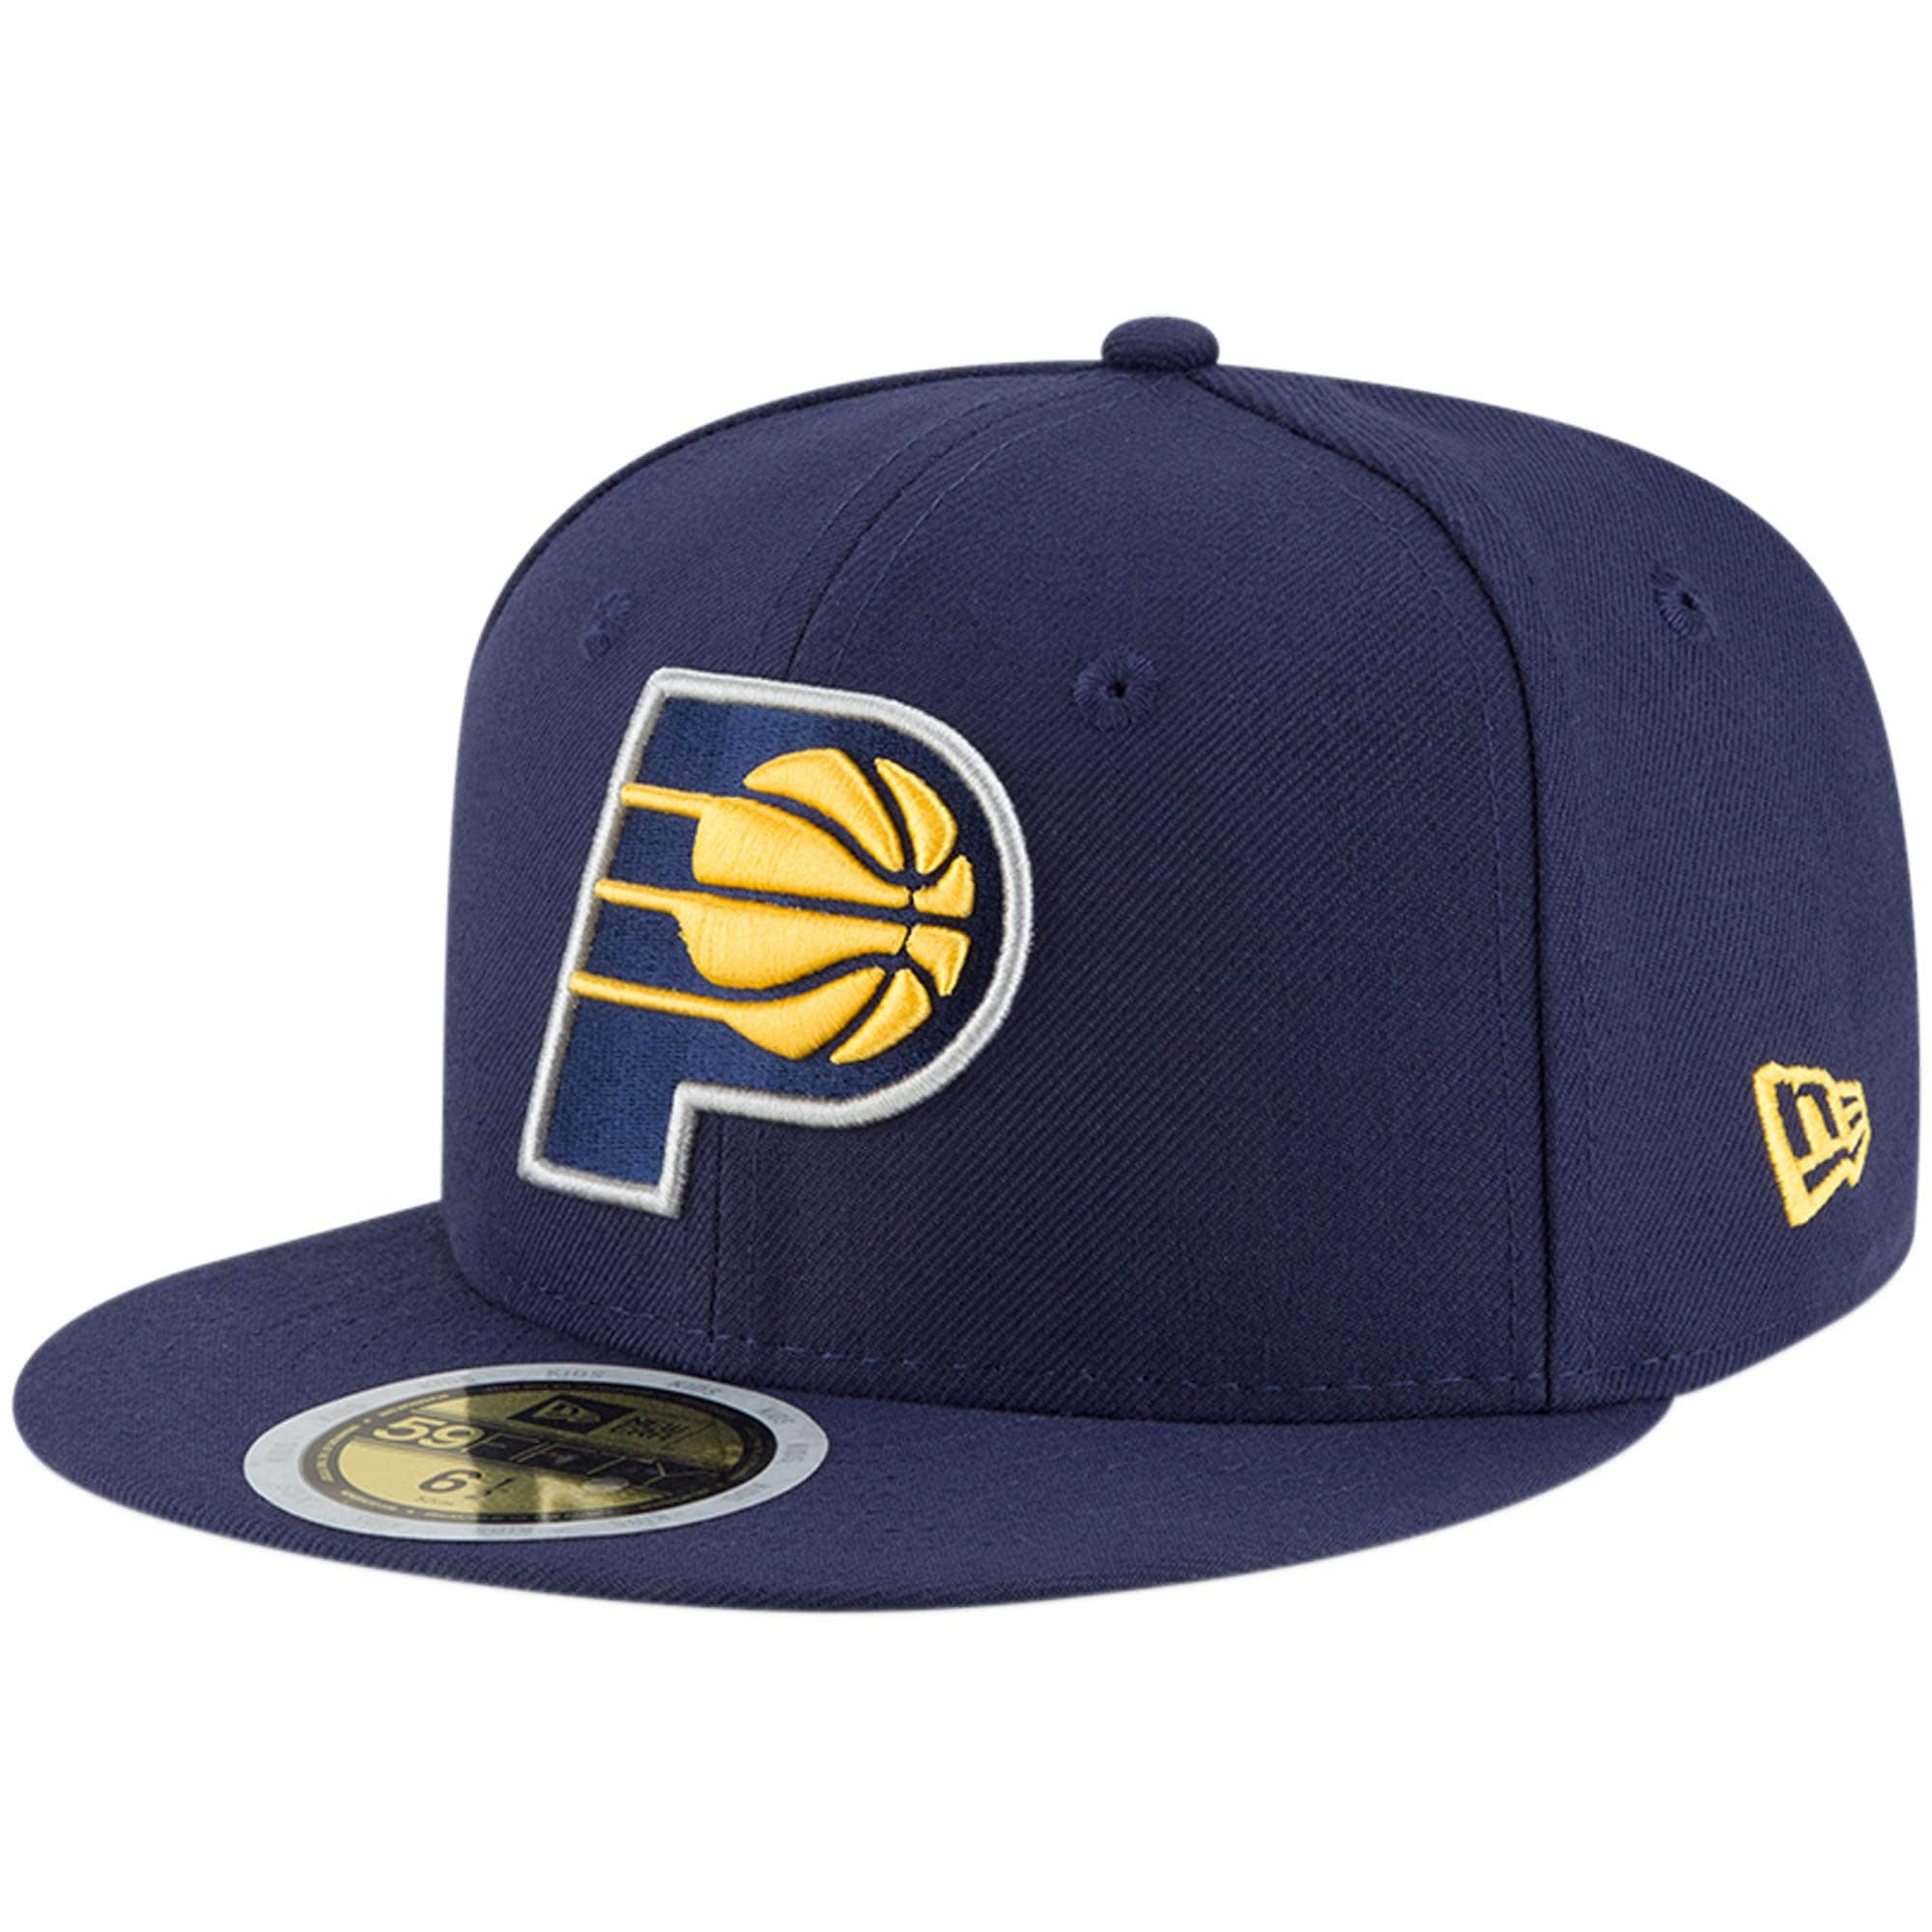 Indiana Pacers New Era Youth Official Team Color 59FIFTY Fitted Hat - Navy